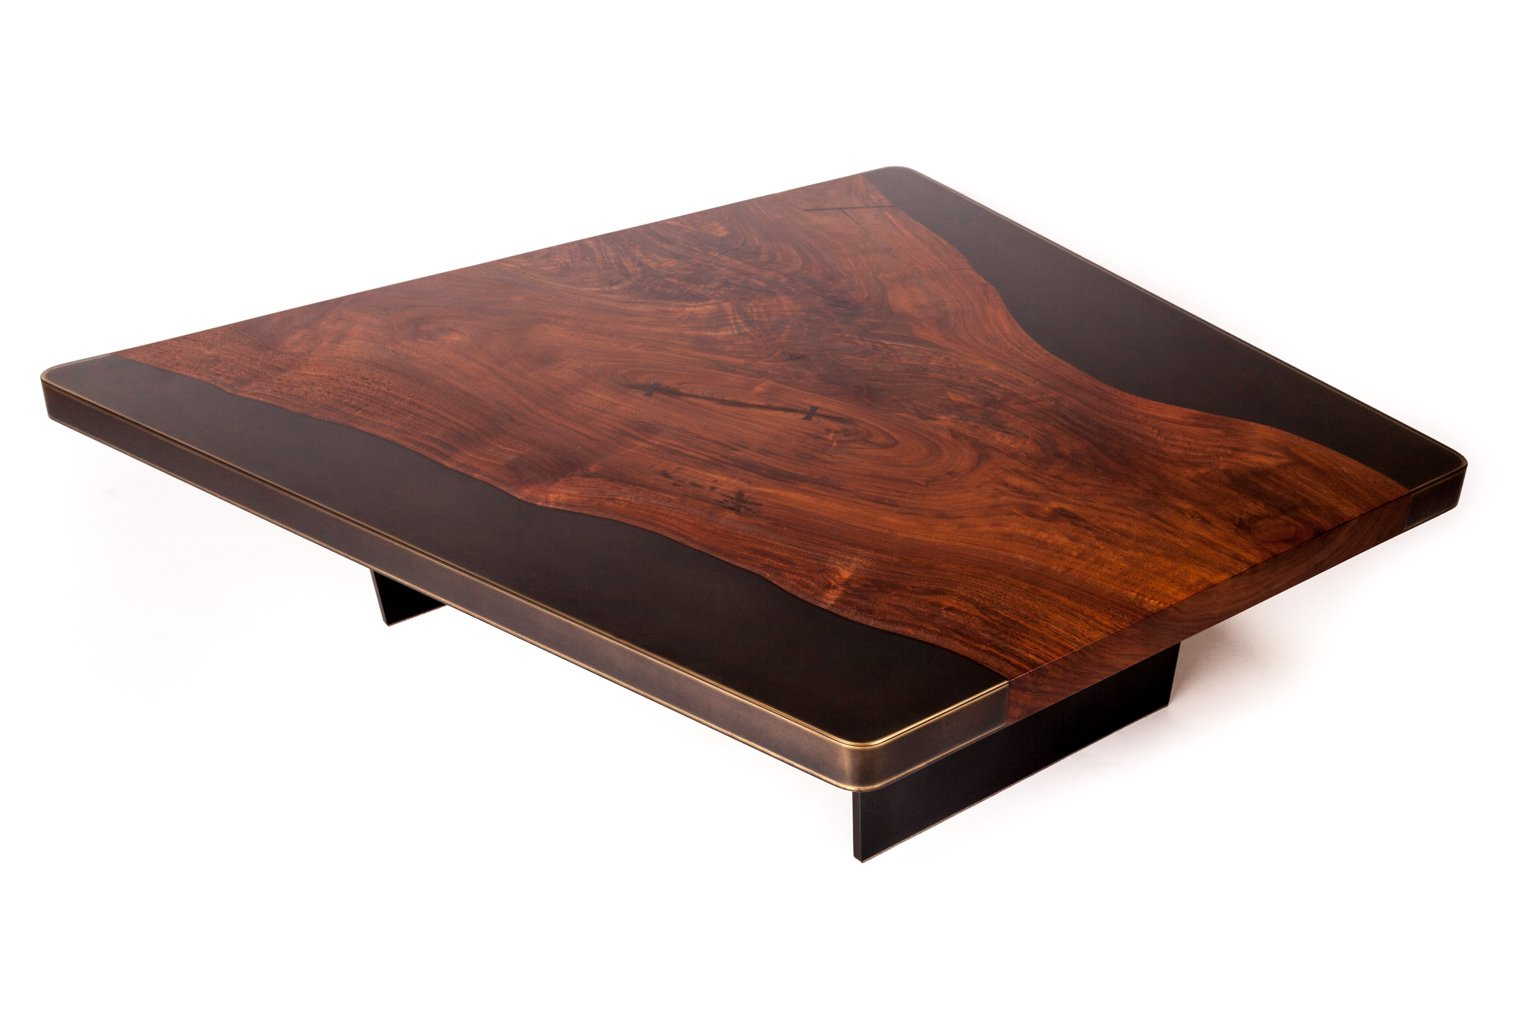 Most Recently Released Nola Cocktail Tables With Regard To Nola Cocktail Table, Customizable Wood, Metal And Resin For Sale At (View 7 of 20)